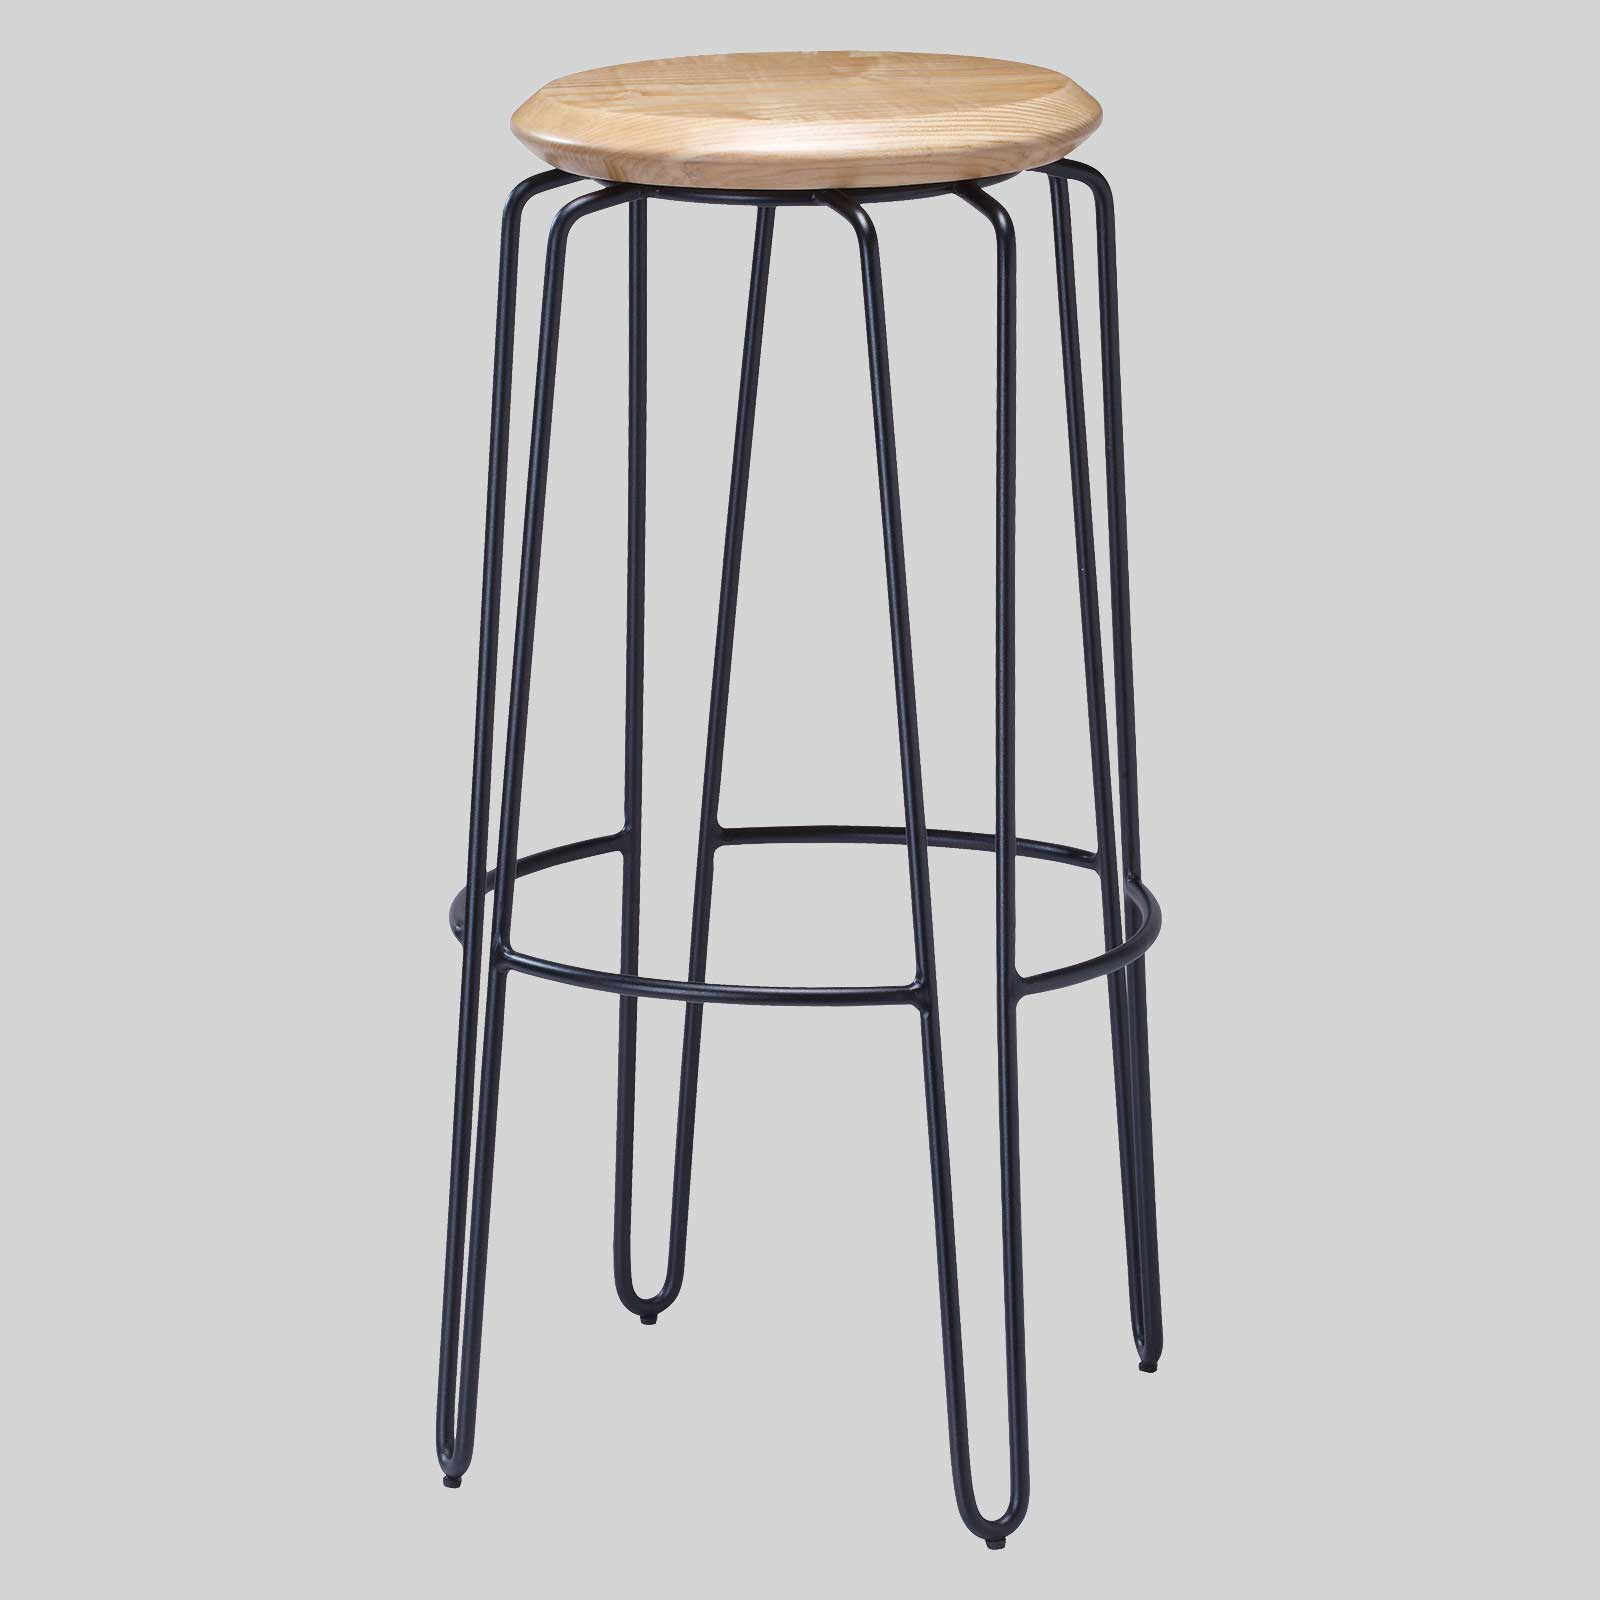 Commercial Hospitality Barstools Phoenix Concept  : Phoenix Bar Stool A from conceptcollections.com.au size 1600 x 1600 jpeg 64kB